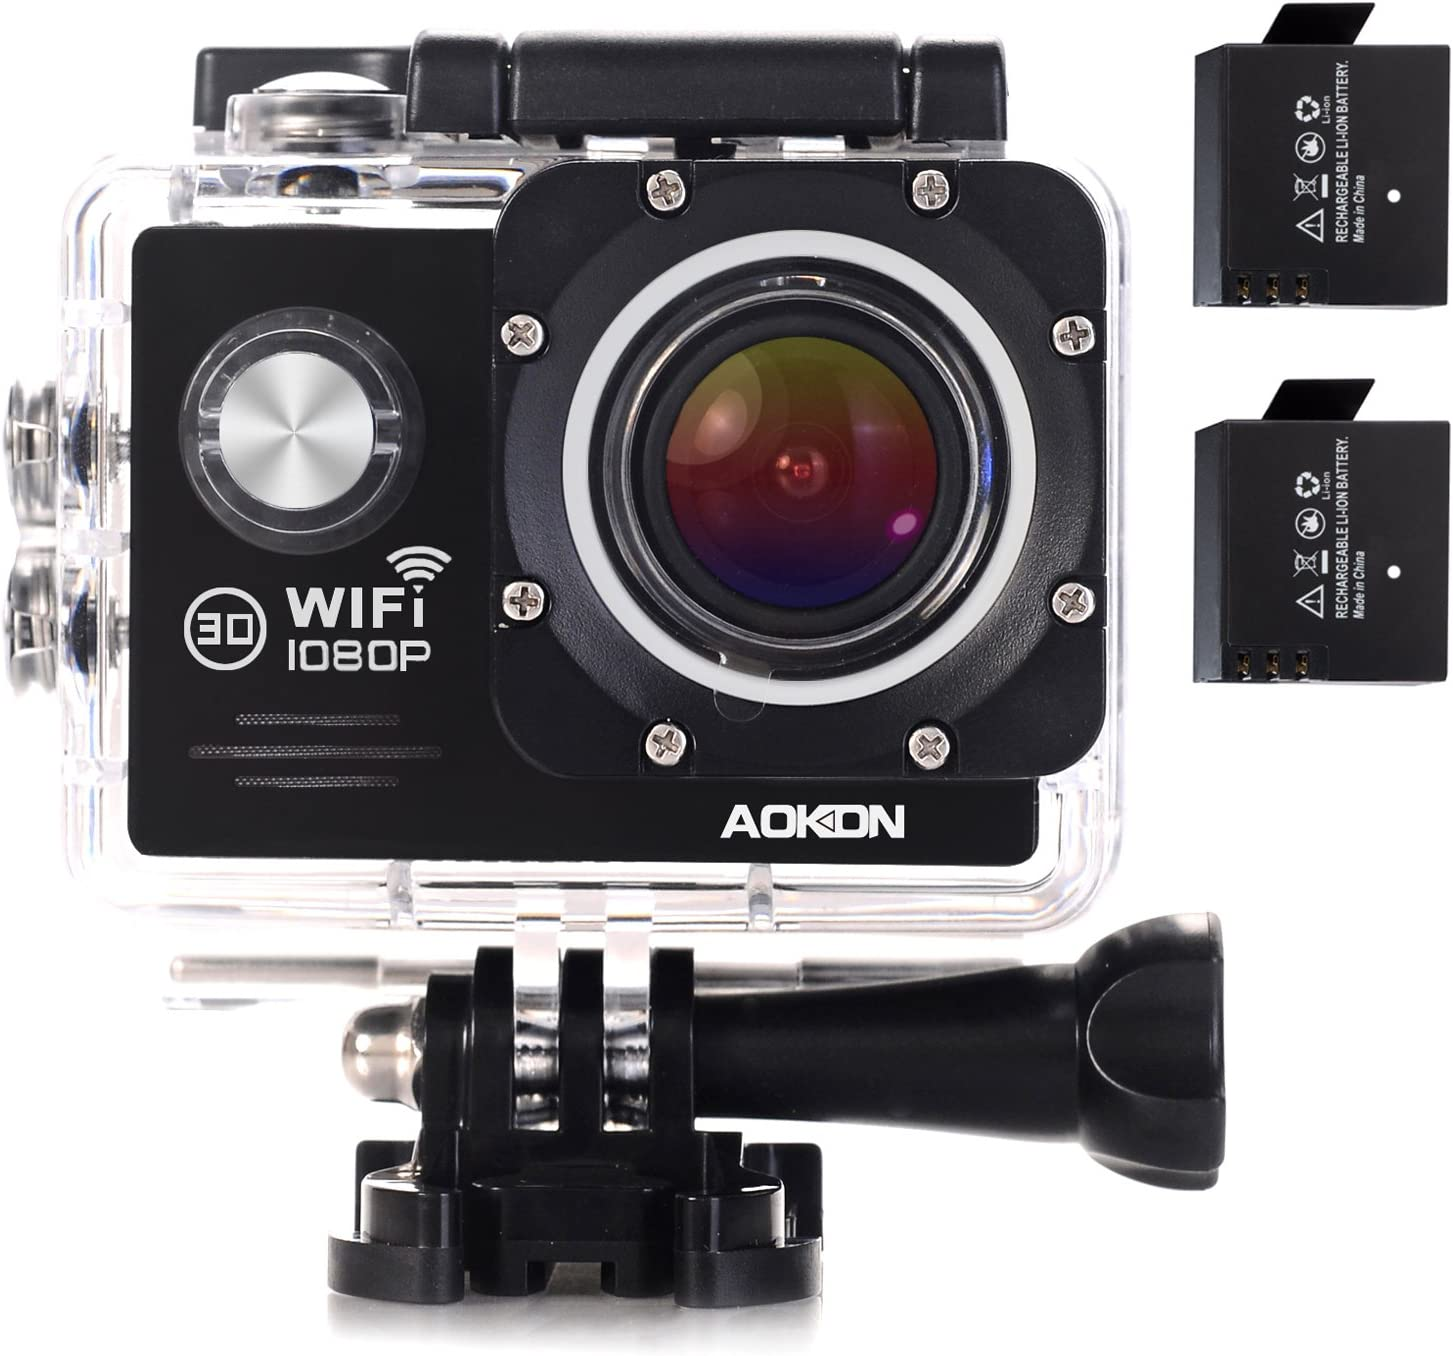 AOKON ASJ70 Action Camera 12MP 1080P HD WiFi 4X Zoom Waterproof Sports Cam 2 Inch LCD Screen, 170 Degree Wide Angle Lens, 98ft Underwater DV Camcorder